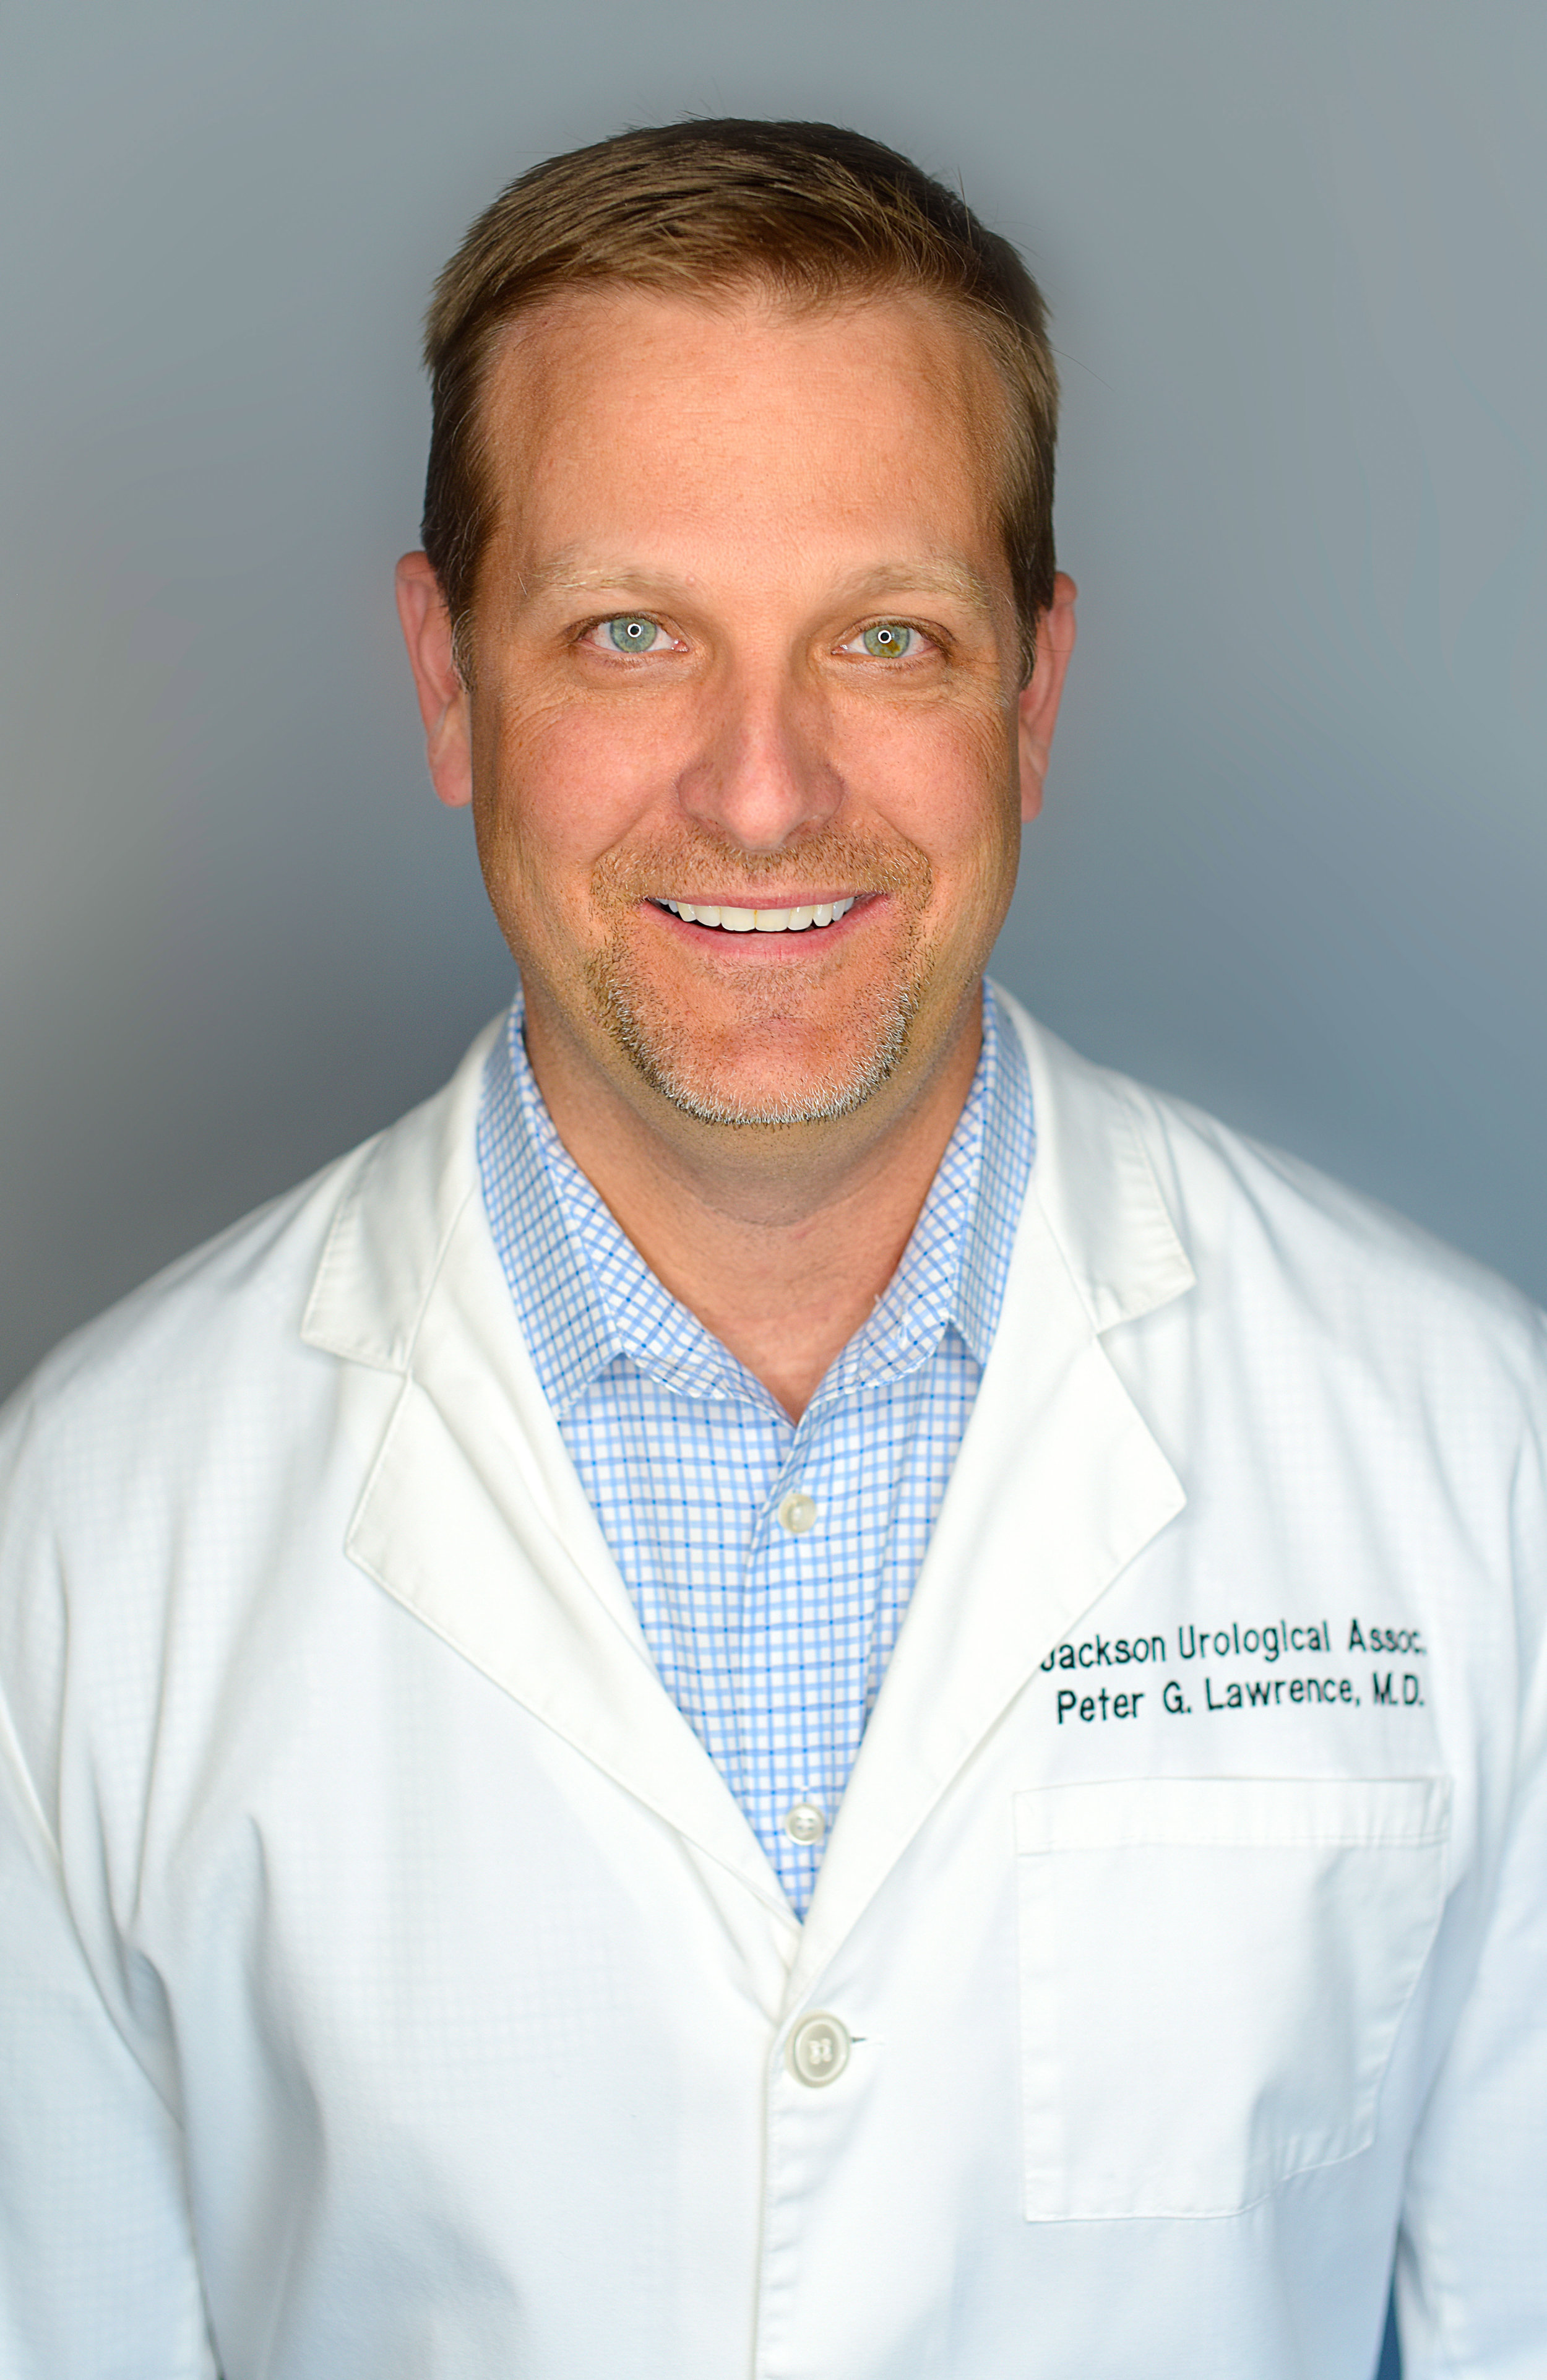 Peter G. Lawrence, M.D.